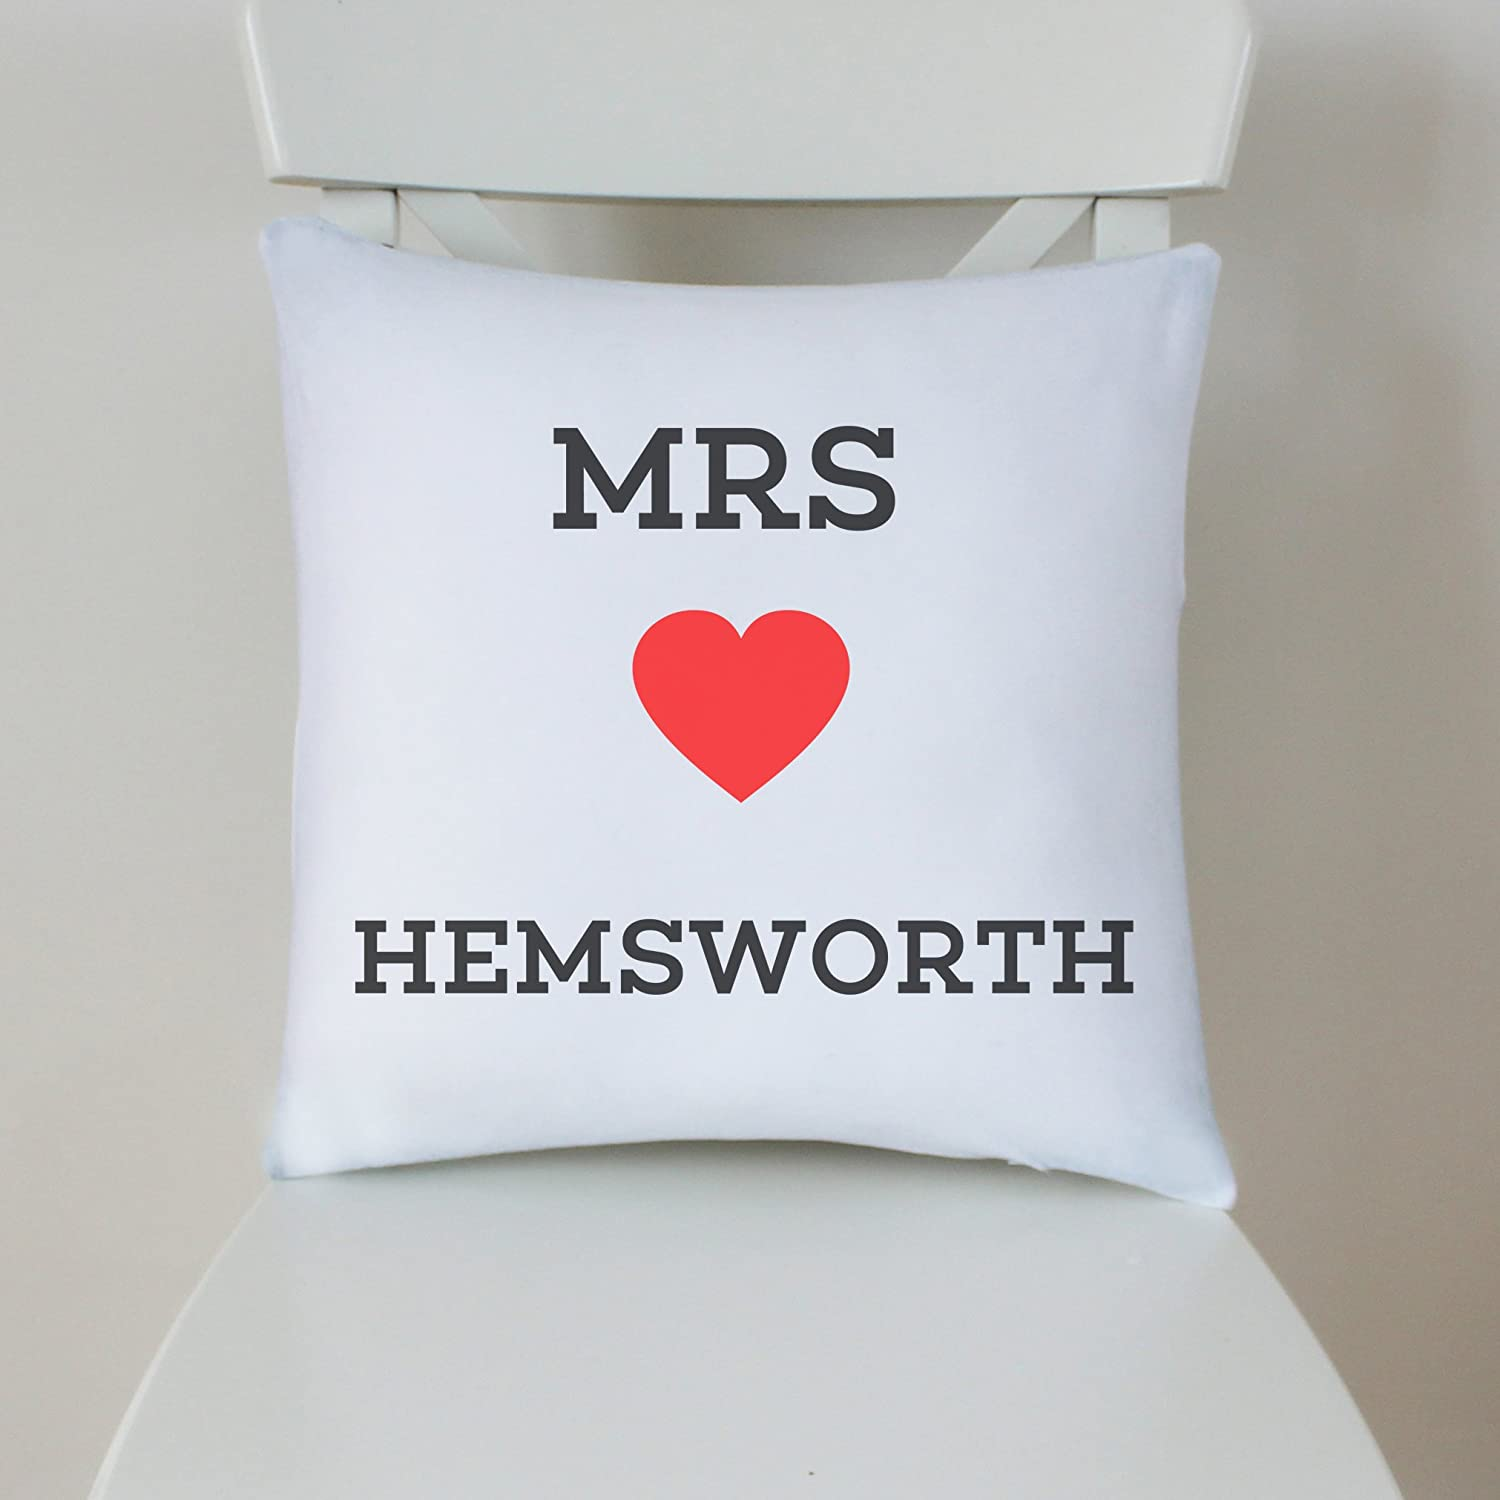 Chris Hemsworth Cushion Pillow - 100% Cotton - Available with or without filling pad - 40x40cm (Cover and cushion filling pad) The Stocking Fillers